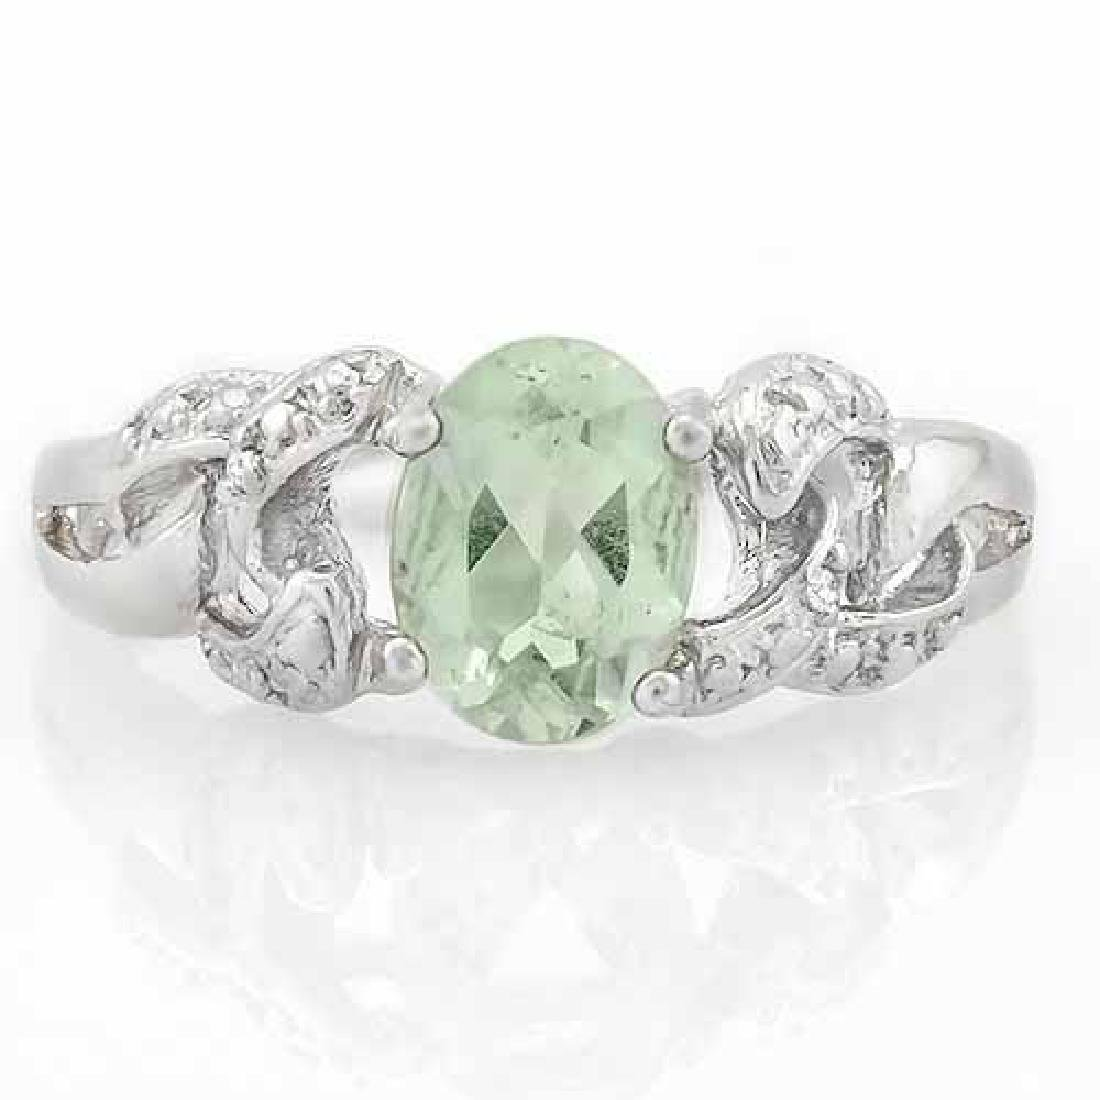 1 CARAT GREEN AMETHYST & DIAMOND 925 STERLING SILVER RI